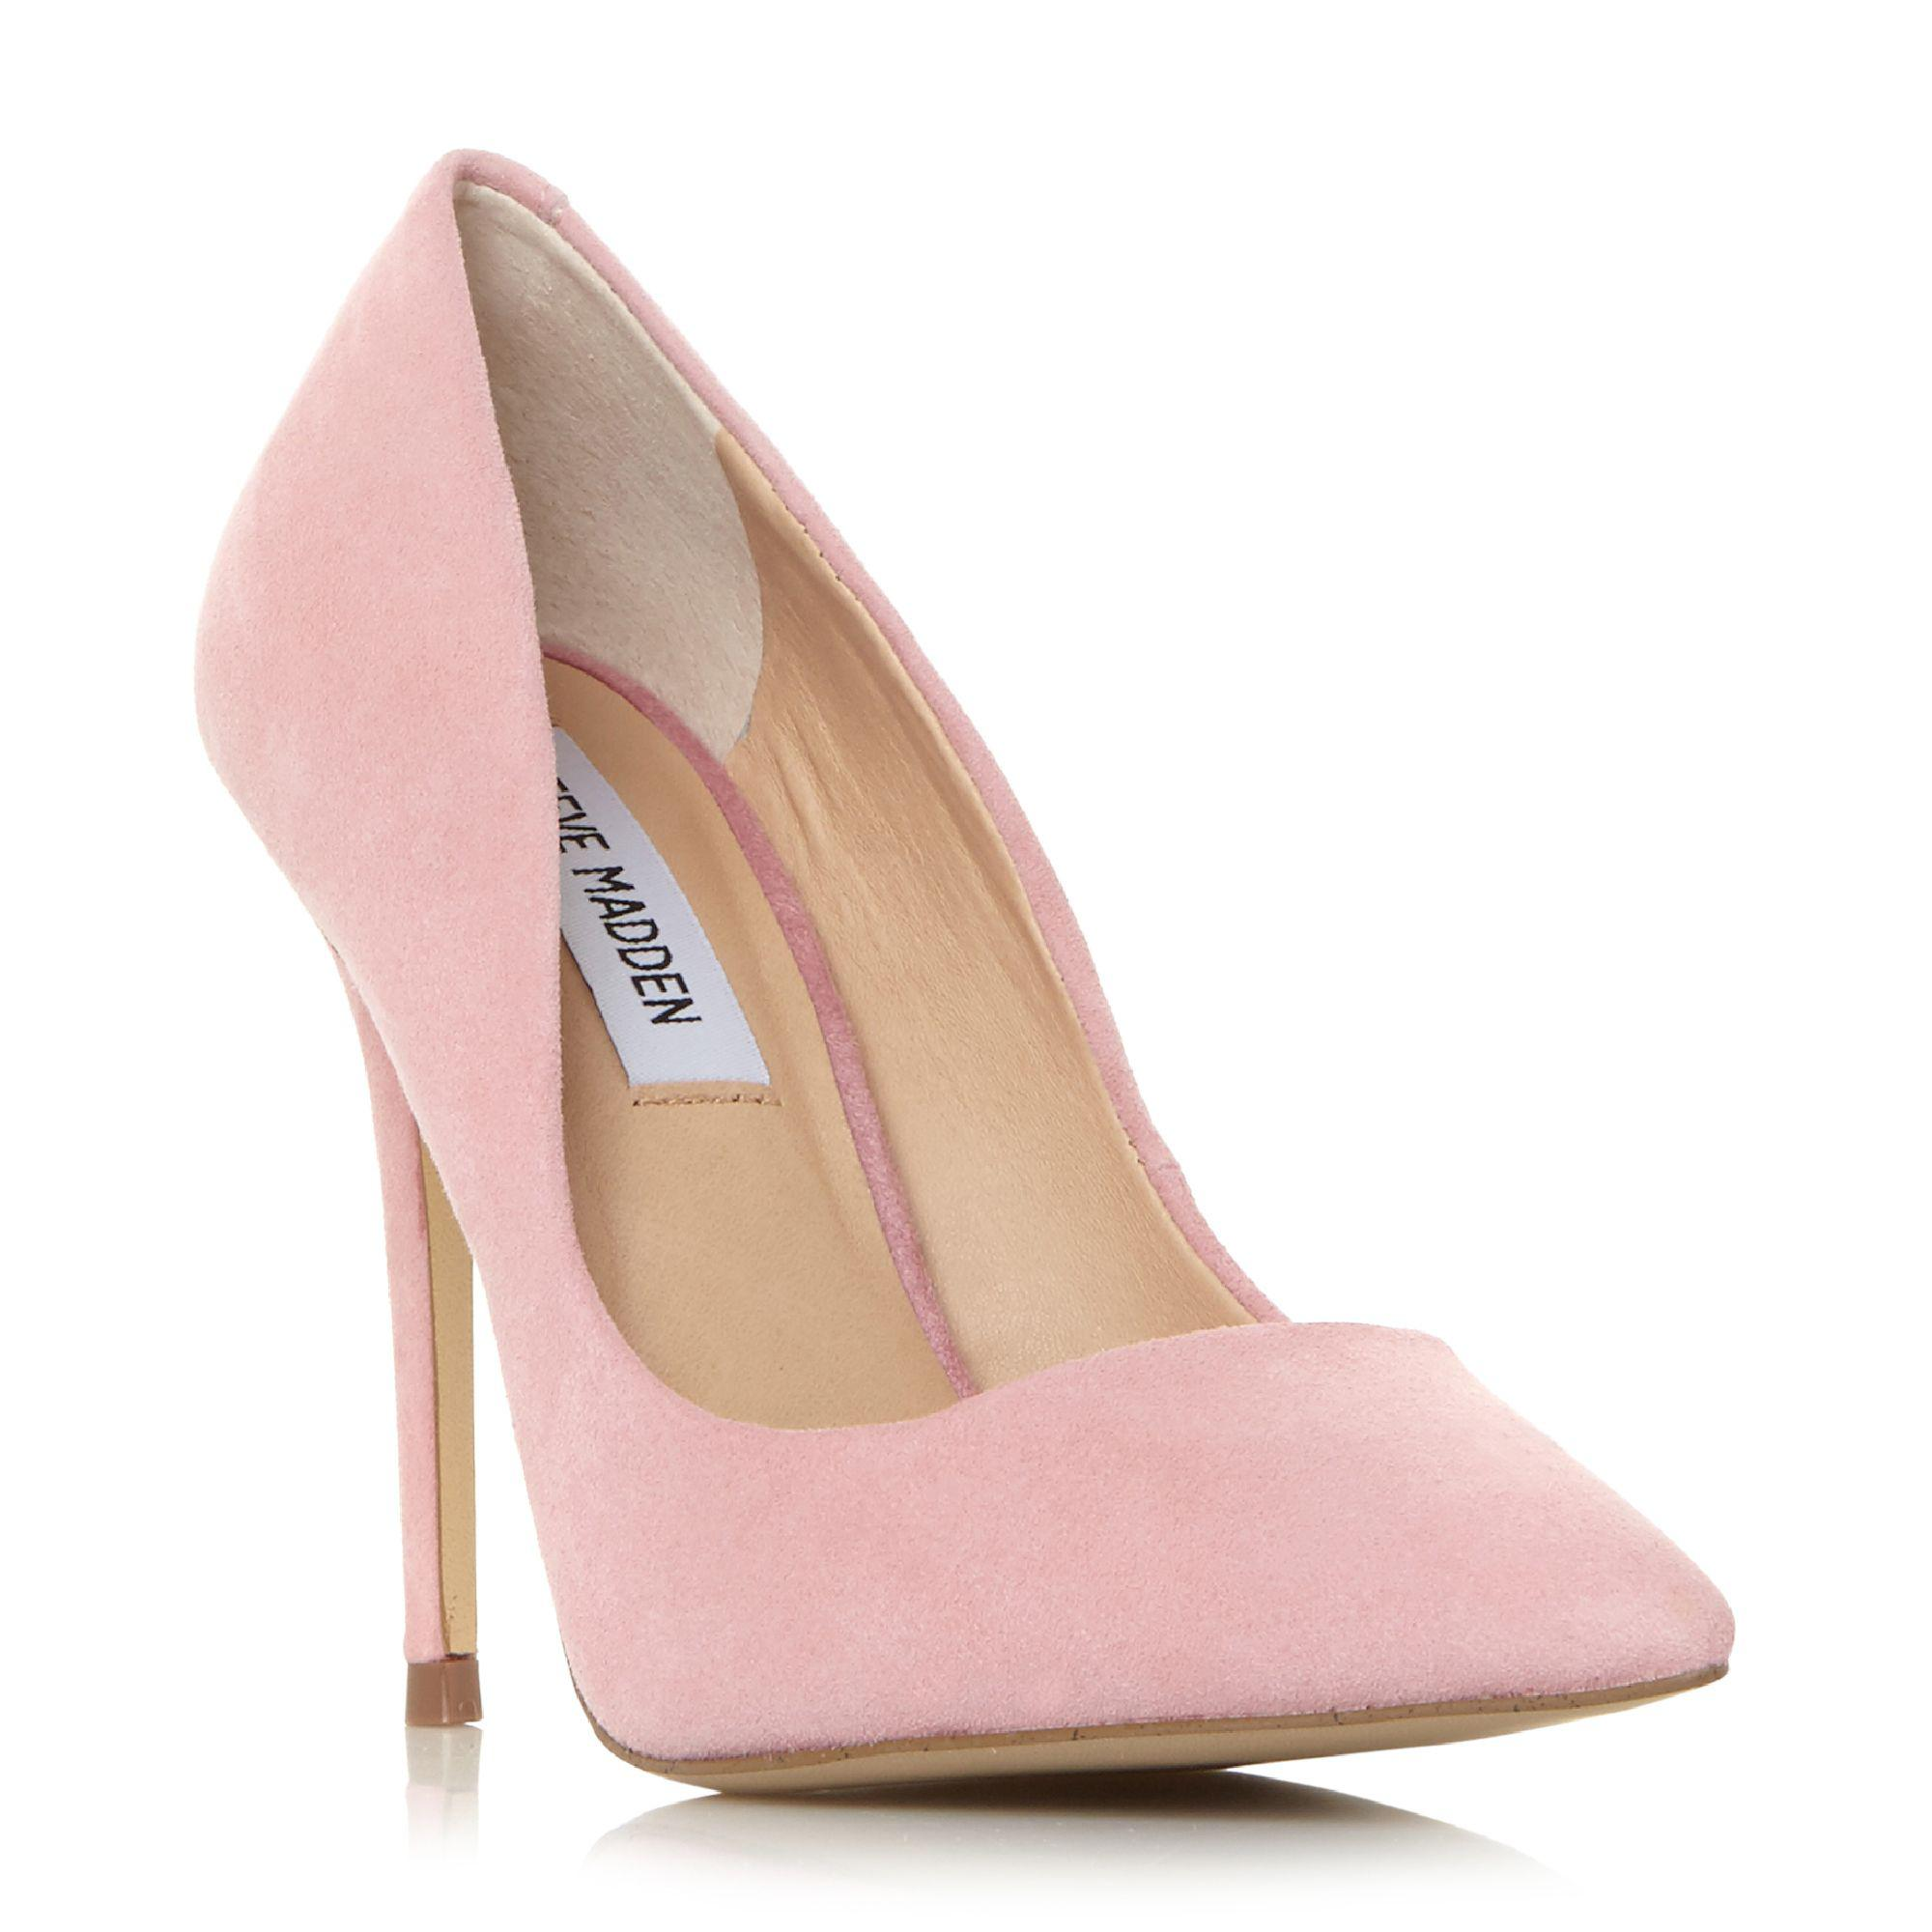 sale in China Light pink leather 'Ancona' mid stiletto heel court shoes pay with paypal online 100% guaranteed clearance discount eastbay online 5R0Lo